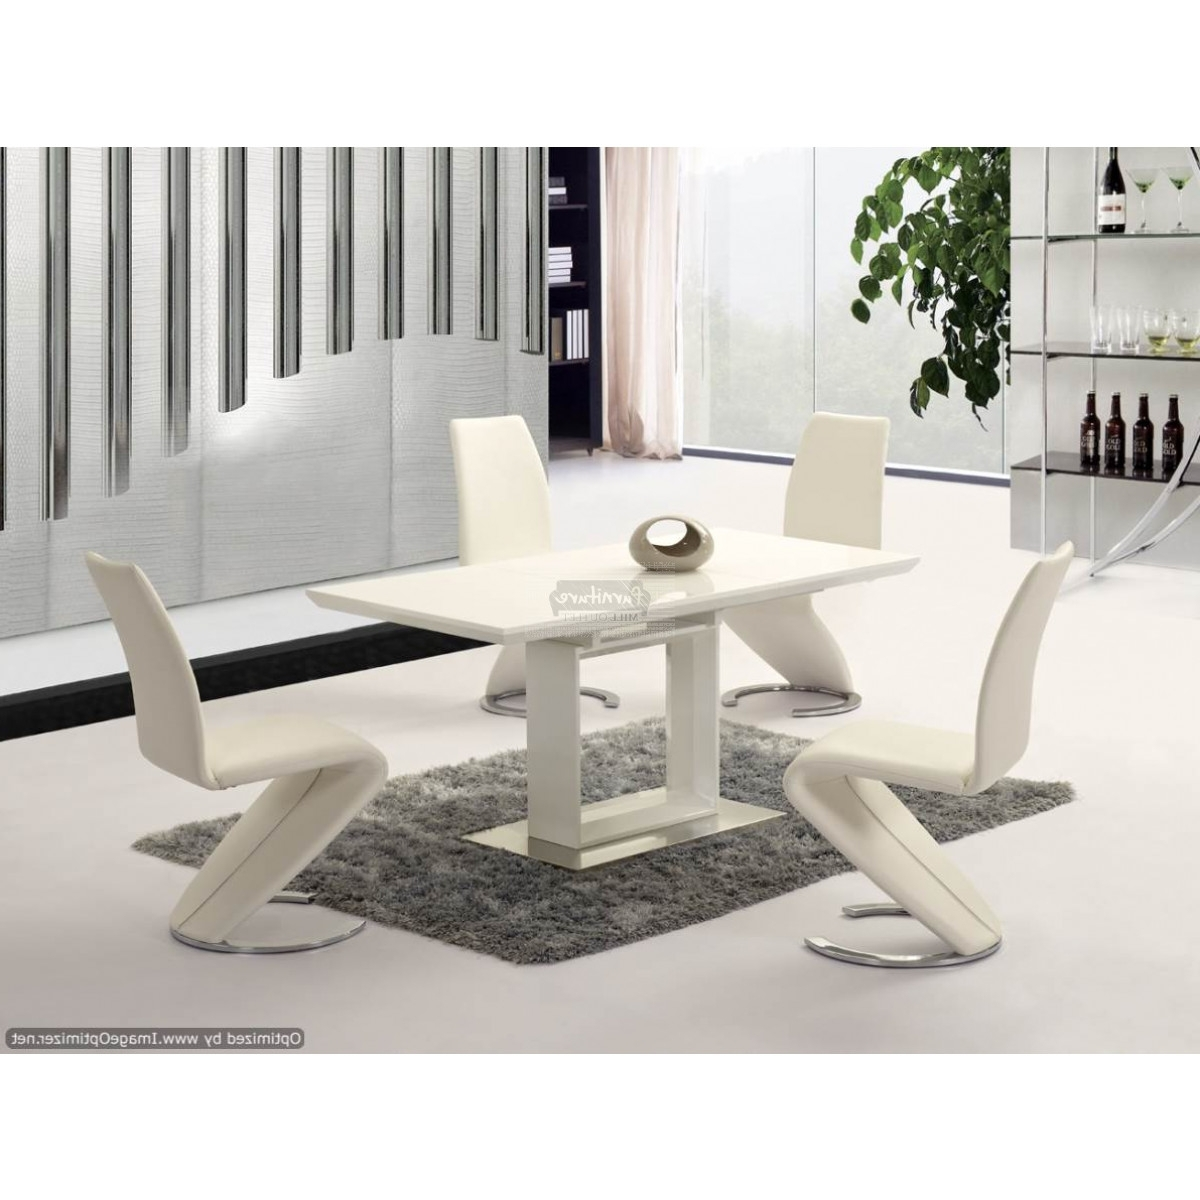 Current Space White High Gloss Extending Dining Table – 120Cm To 160Cm Within 4 Seater Extendable Dining Tables (View 22 of 25)